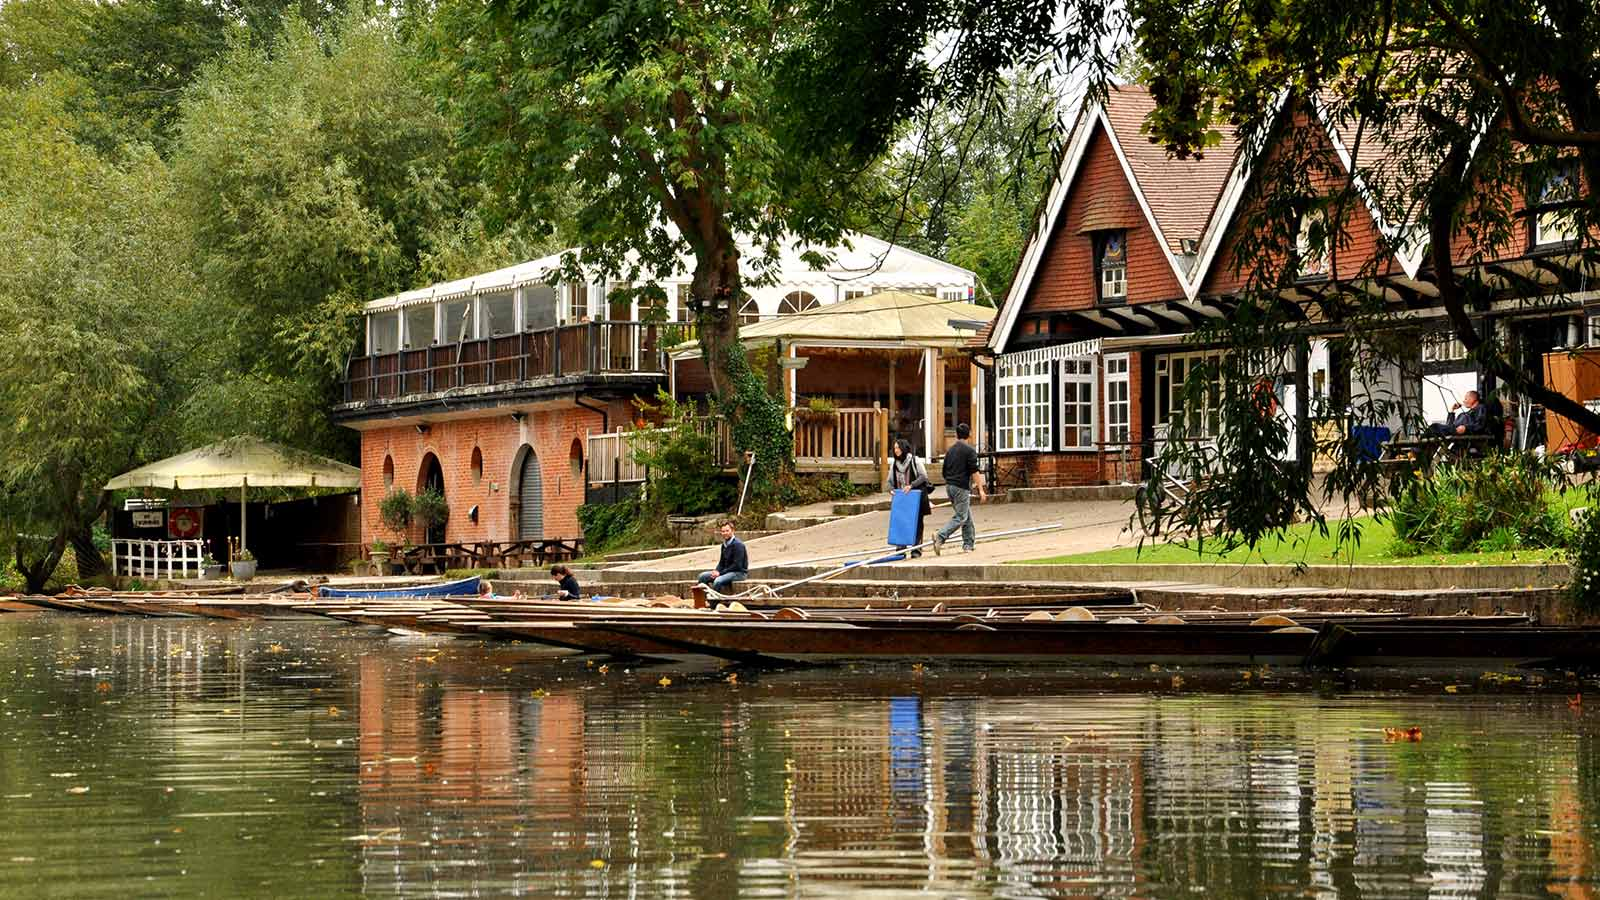 The Cherwell Boathouse Riverside Dining The Oxford Student